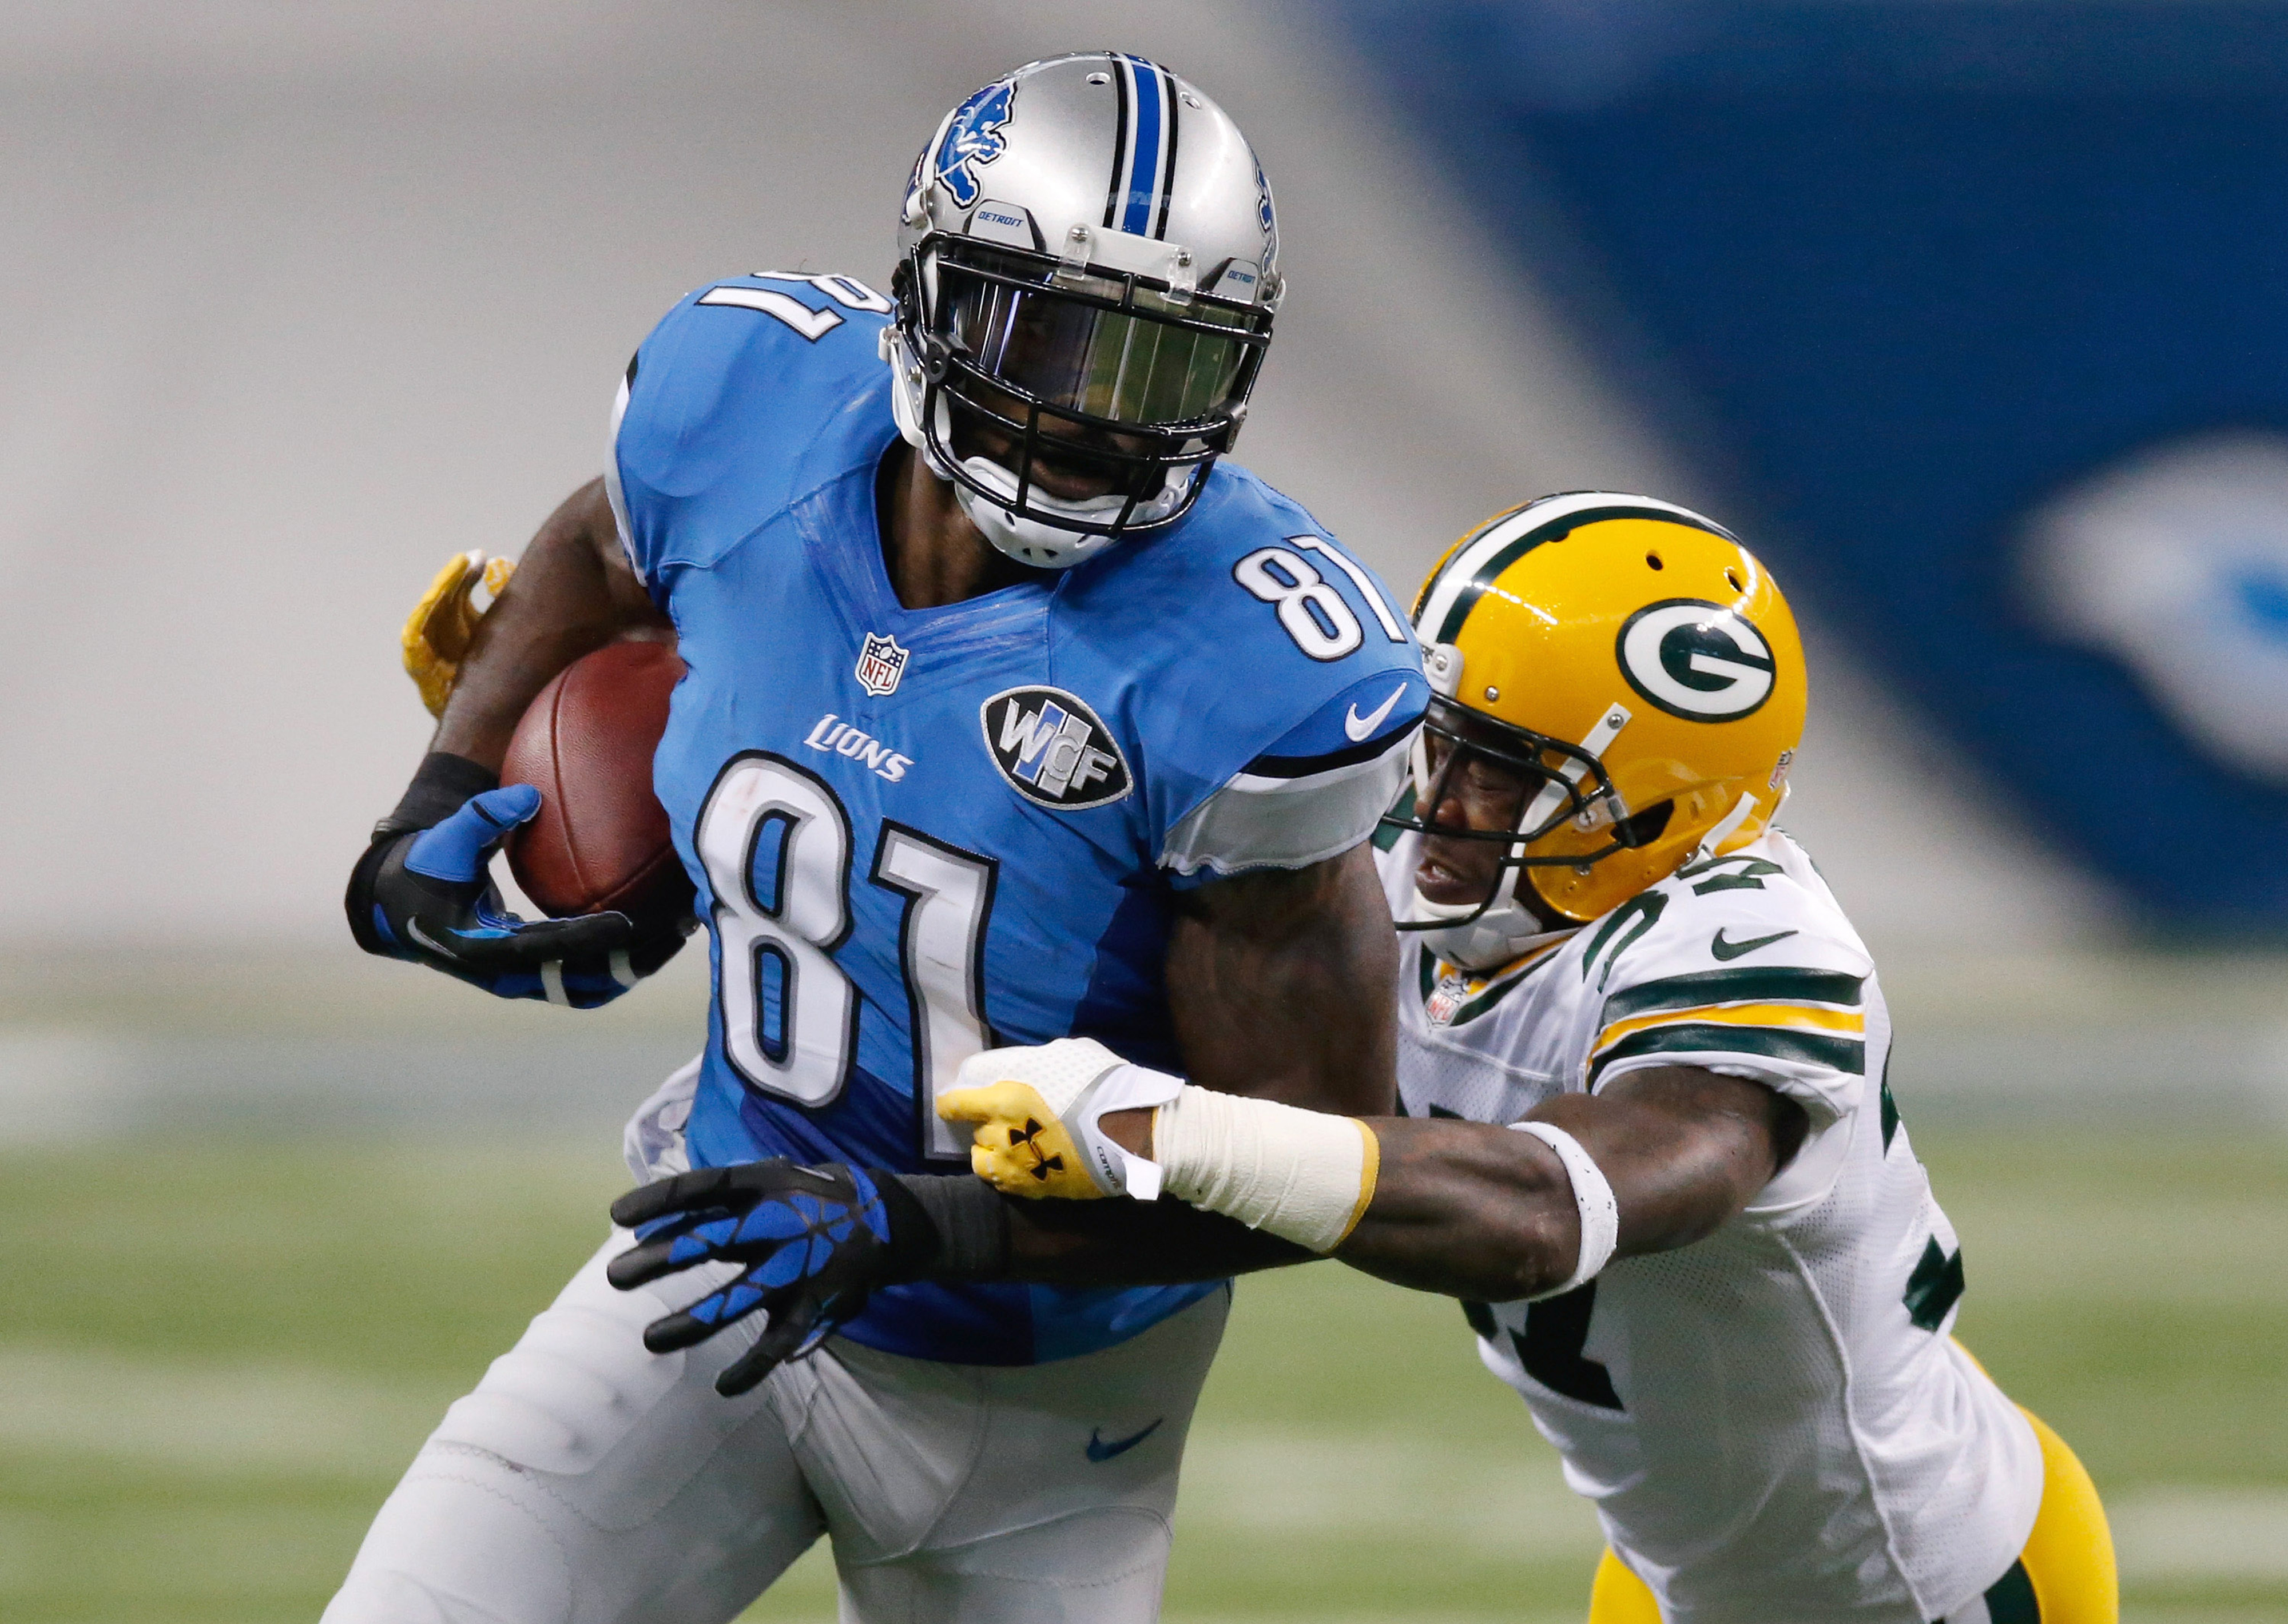 Lions vs. Jets 2014 picks and predictions: Detroit aims for road win